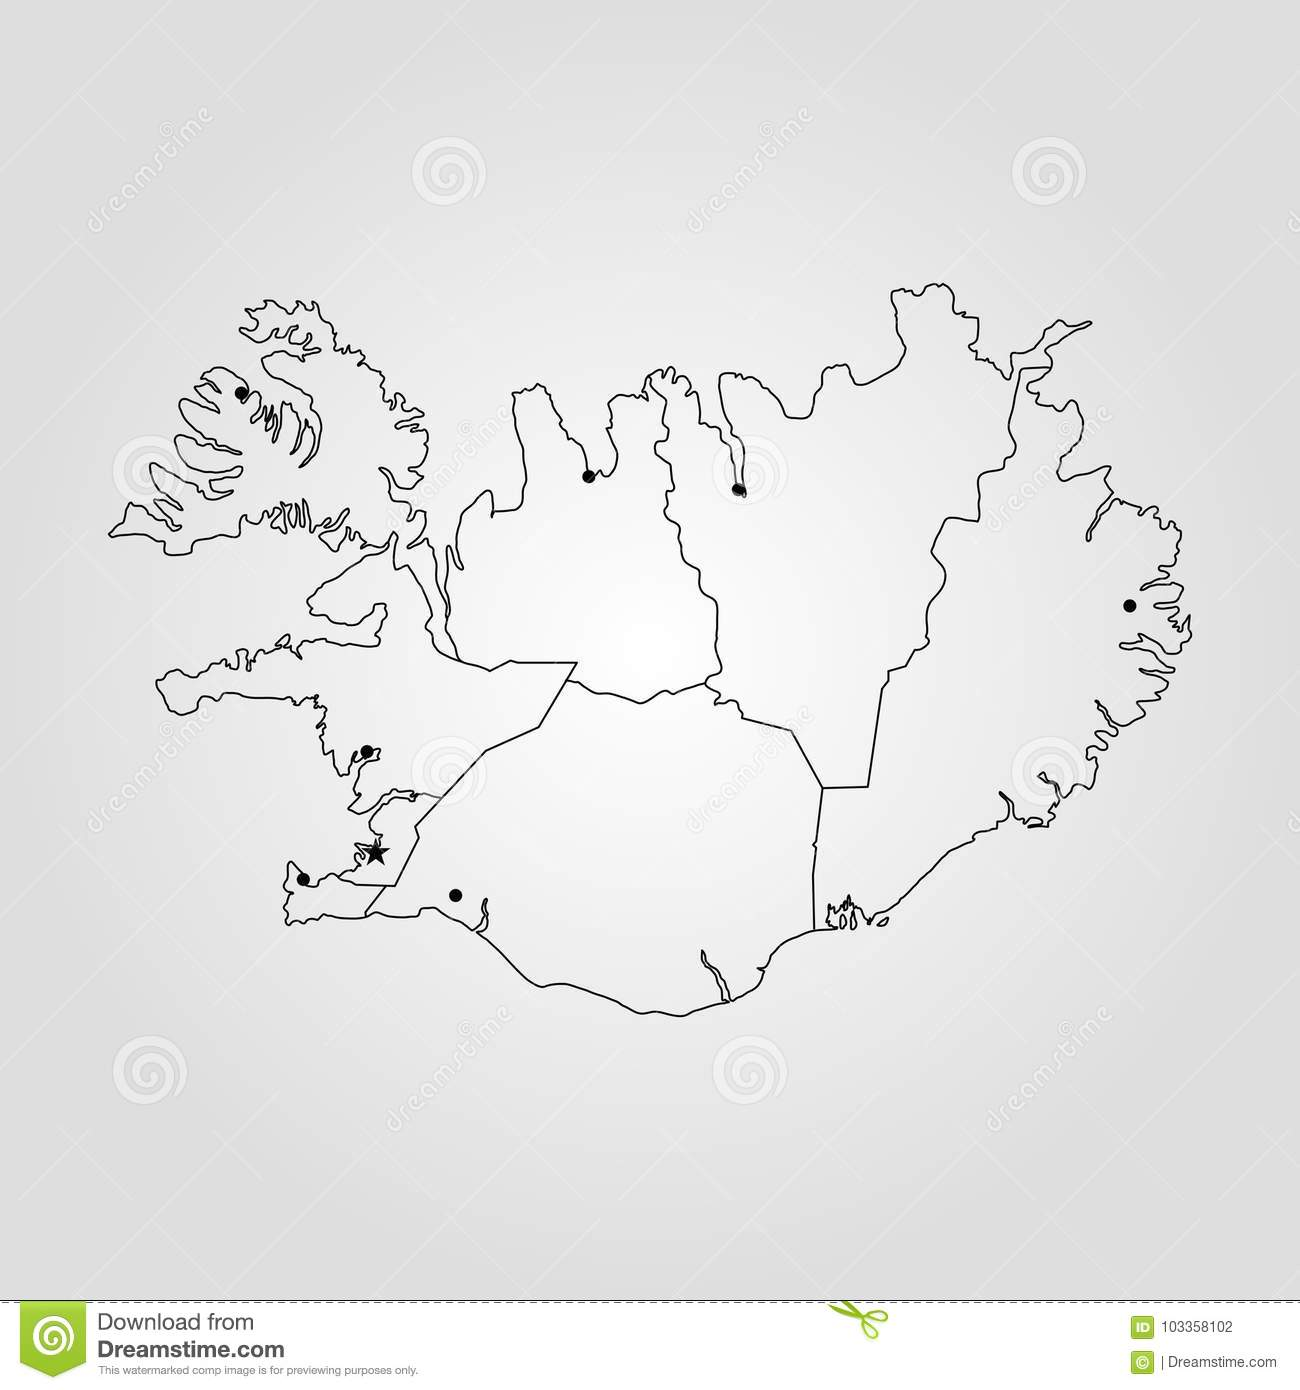 Map of iceland stock illustration illustration of land 103358102 map of iceland vector illustration world map gumiabroncs Images